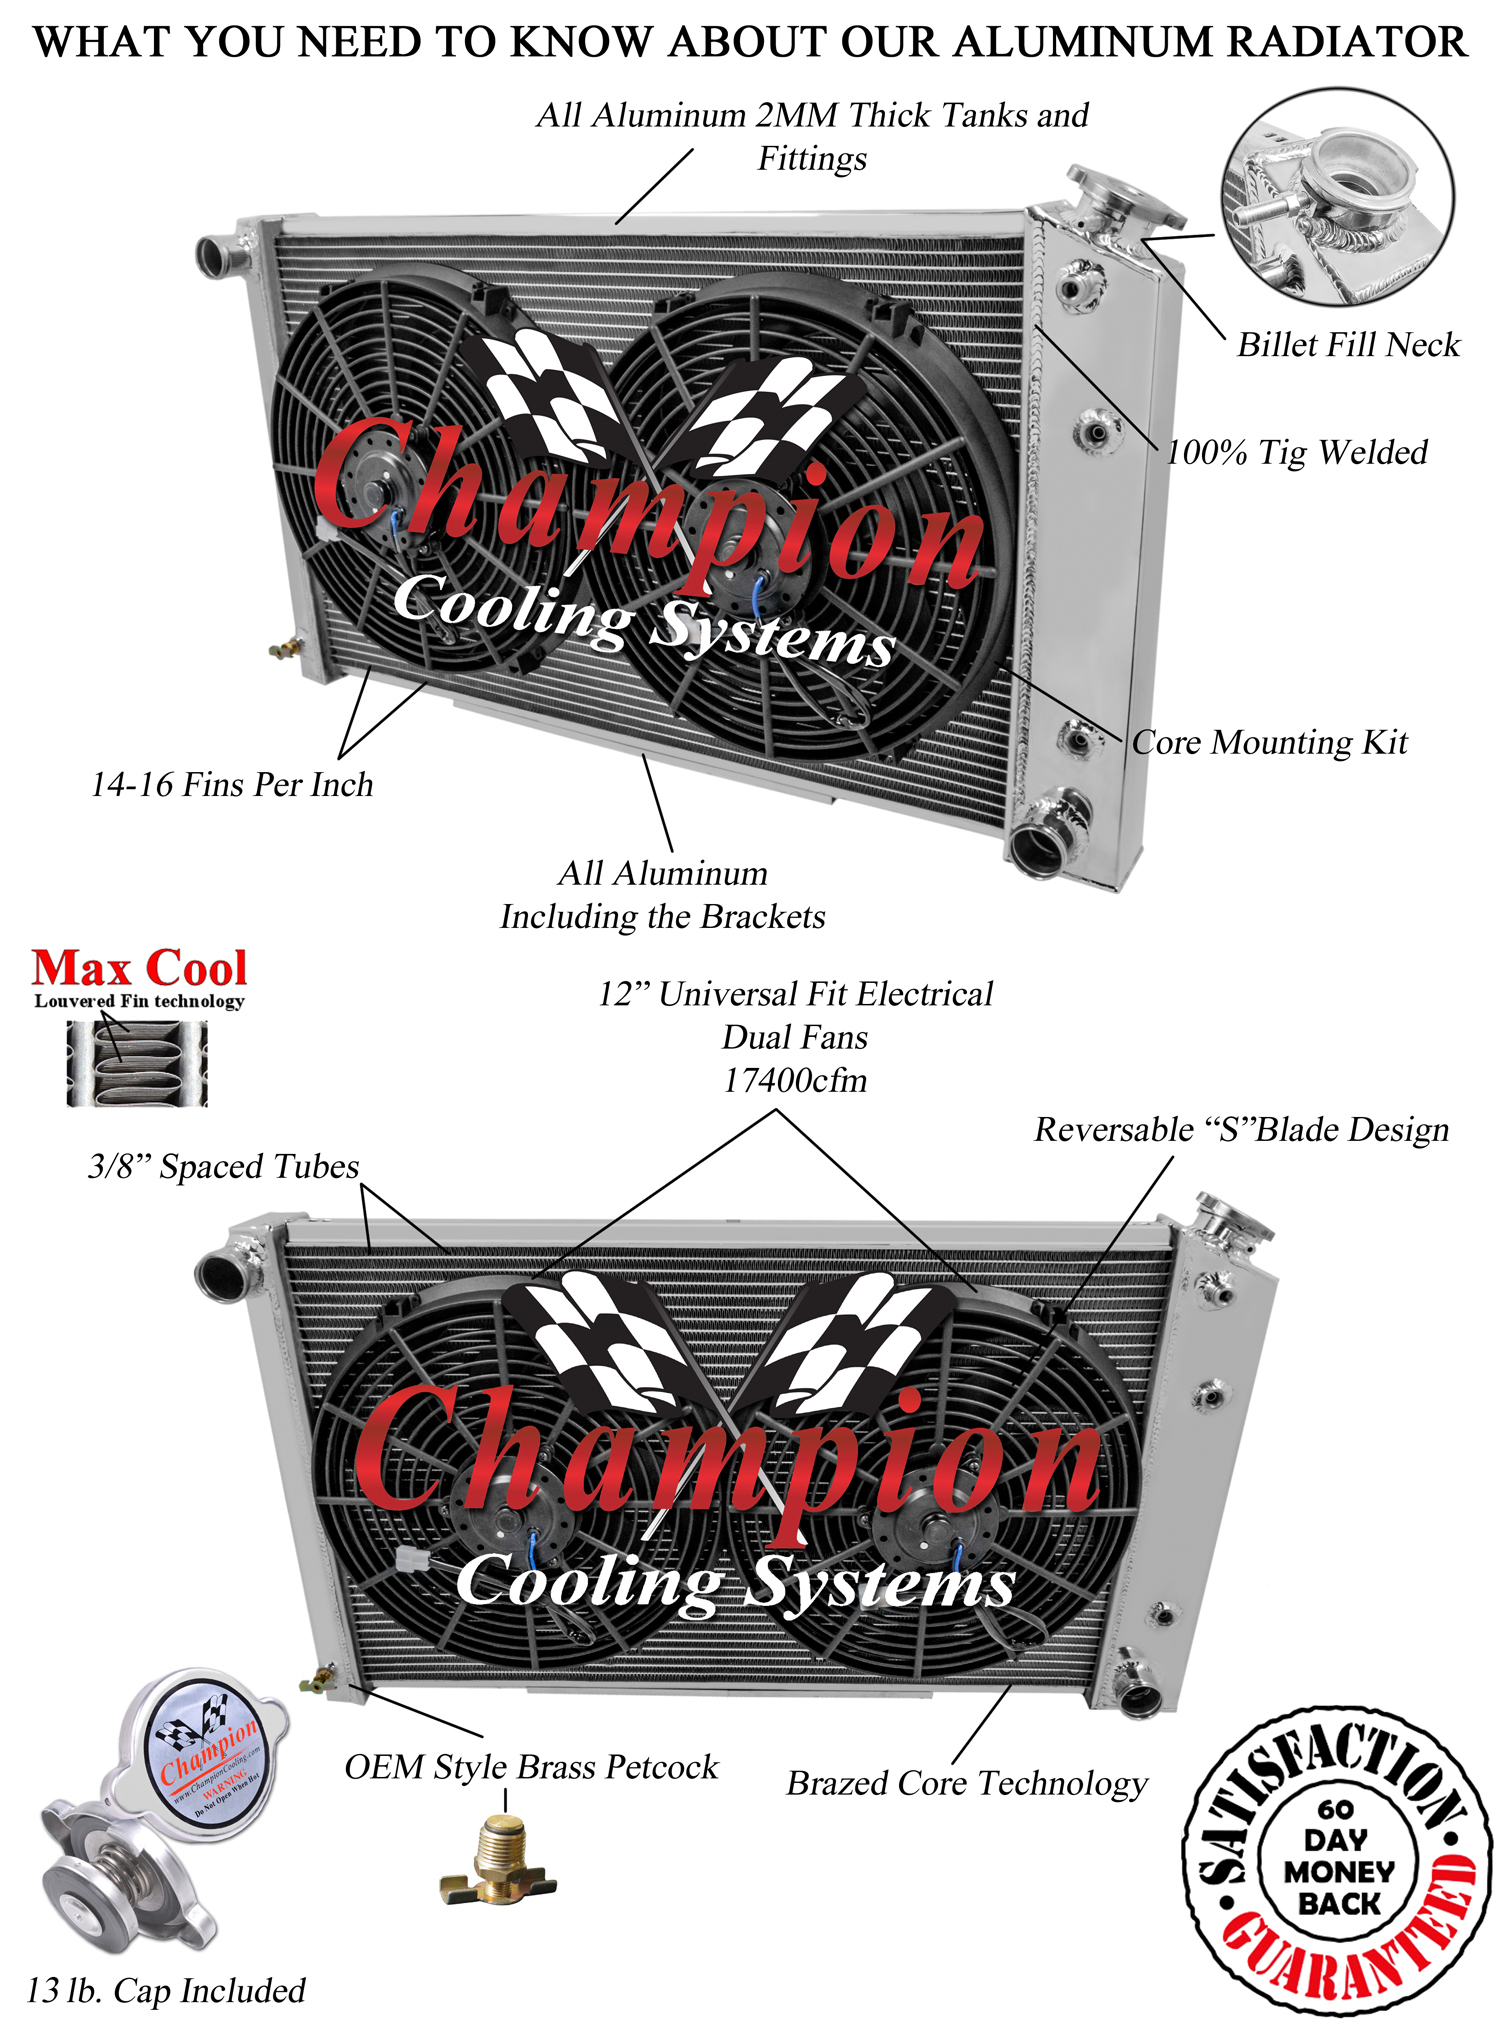 https://www.championcooling.com/photos/Photos%20White/With%20Fans/Combos/162/162_white_diagram_champion.jpg